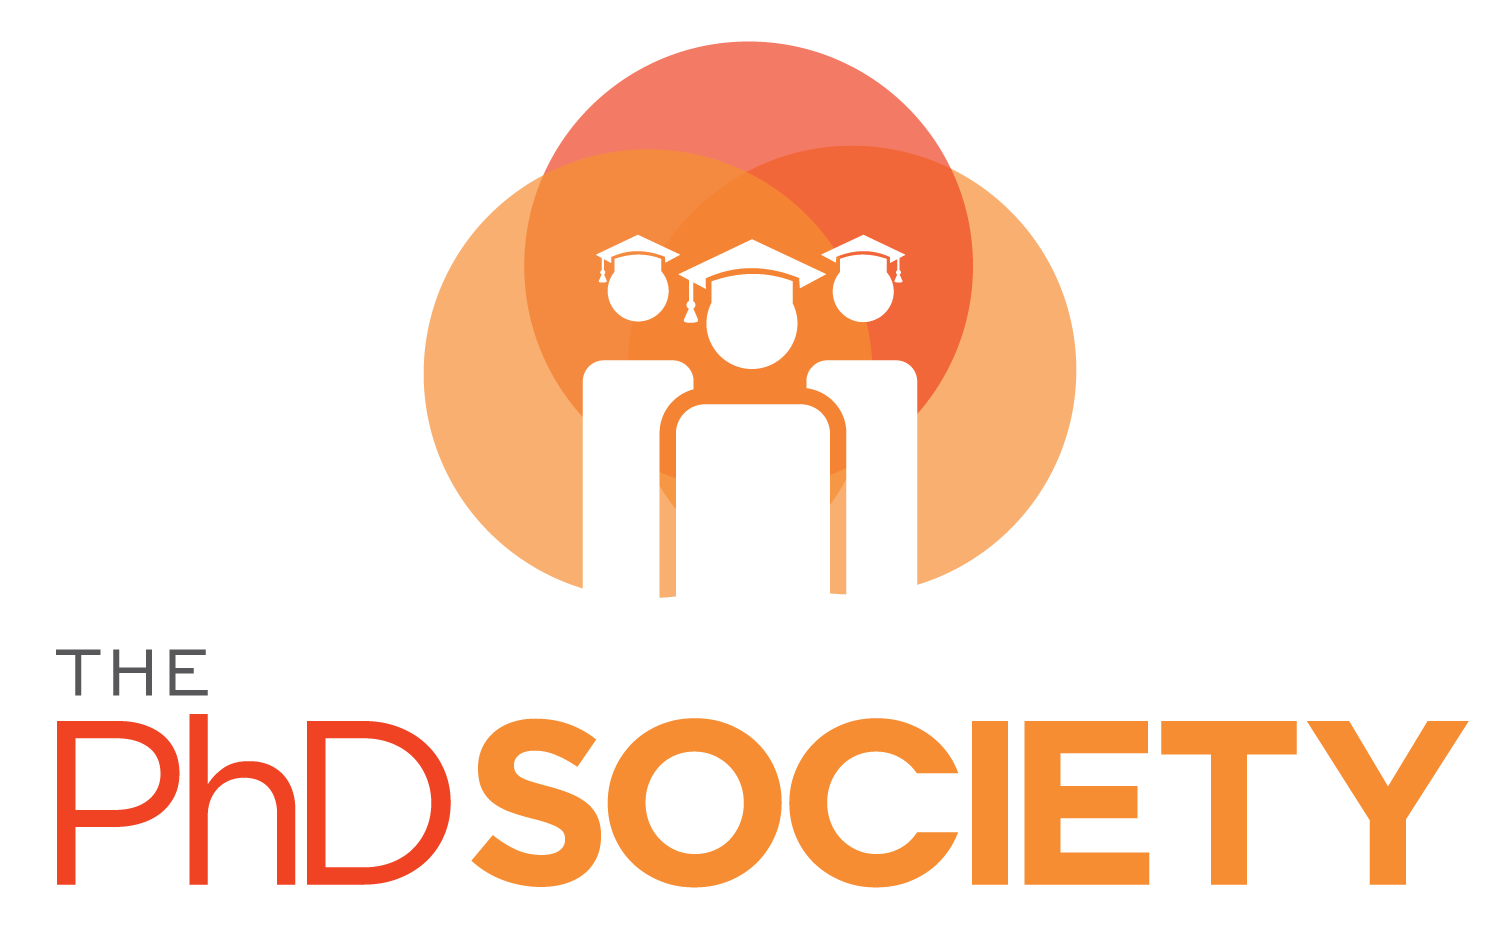 The PhD Society logo